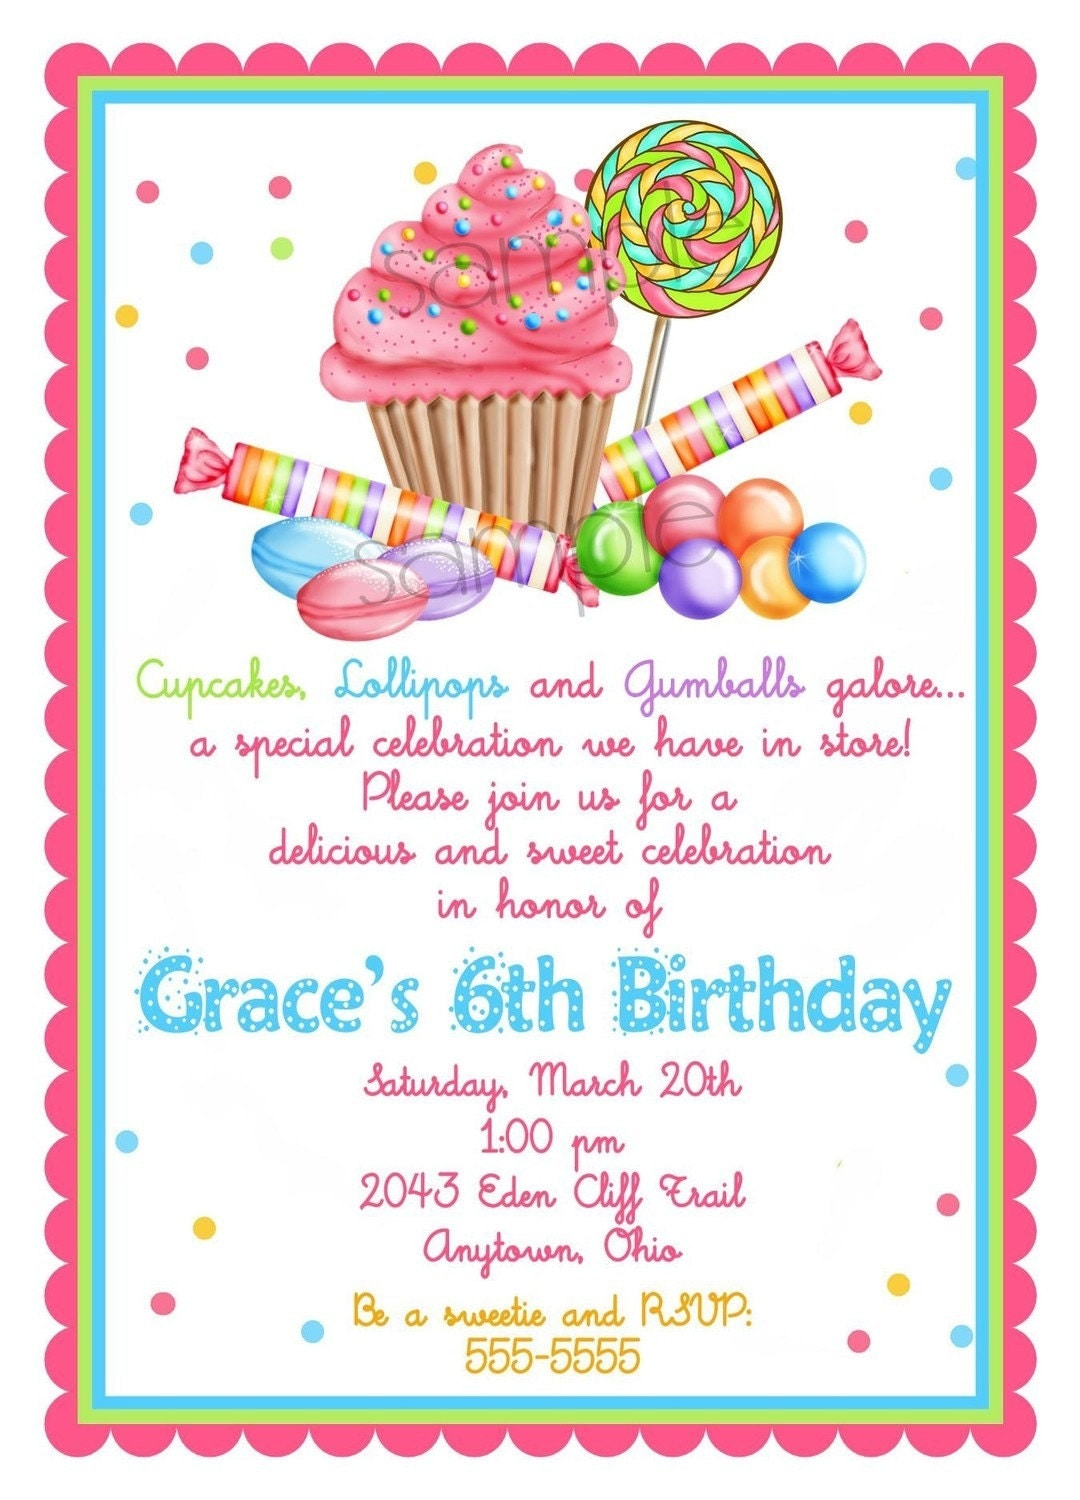 Candyland Party Invitations is one of our best ideas you might choose for invitation design